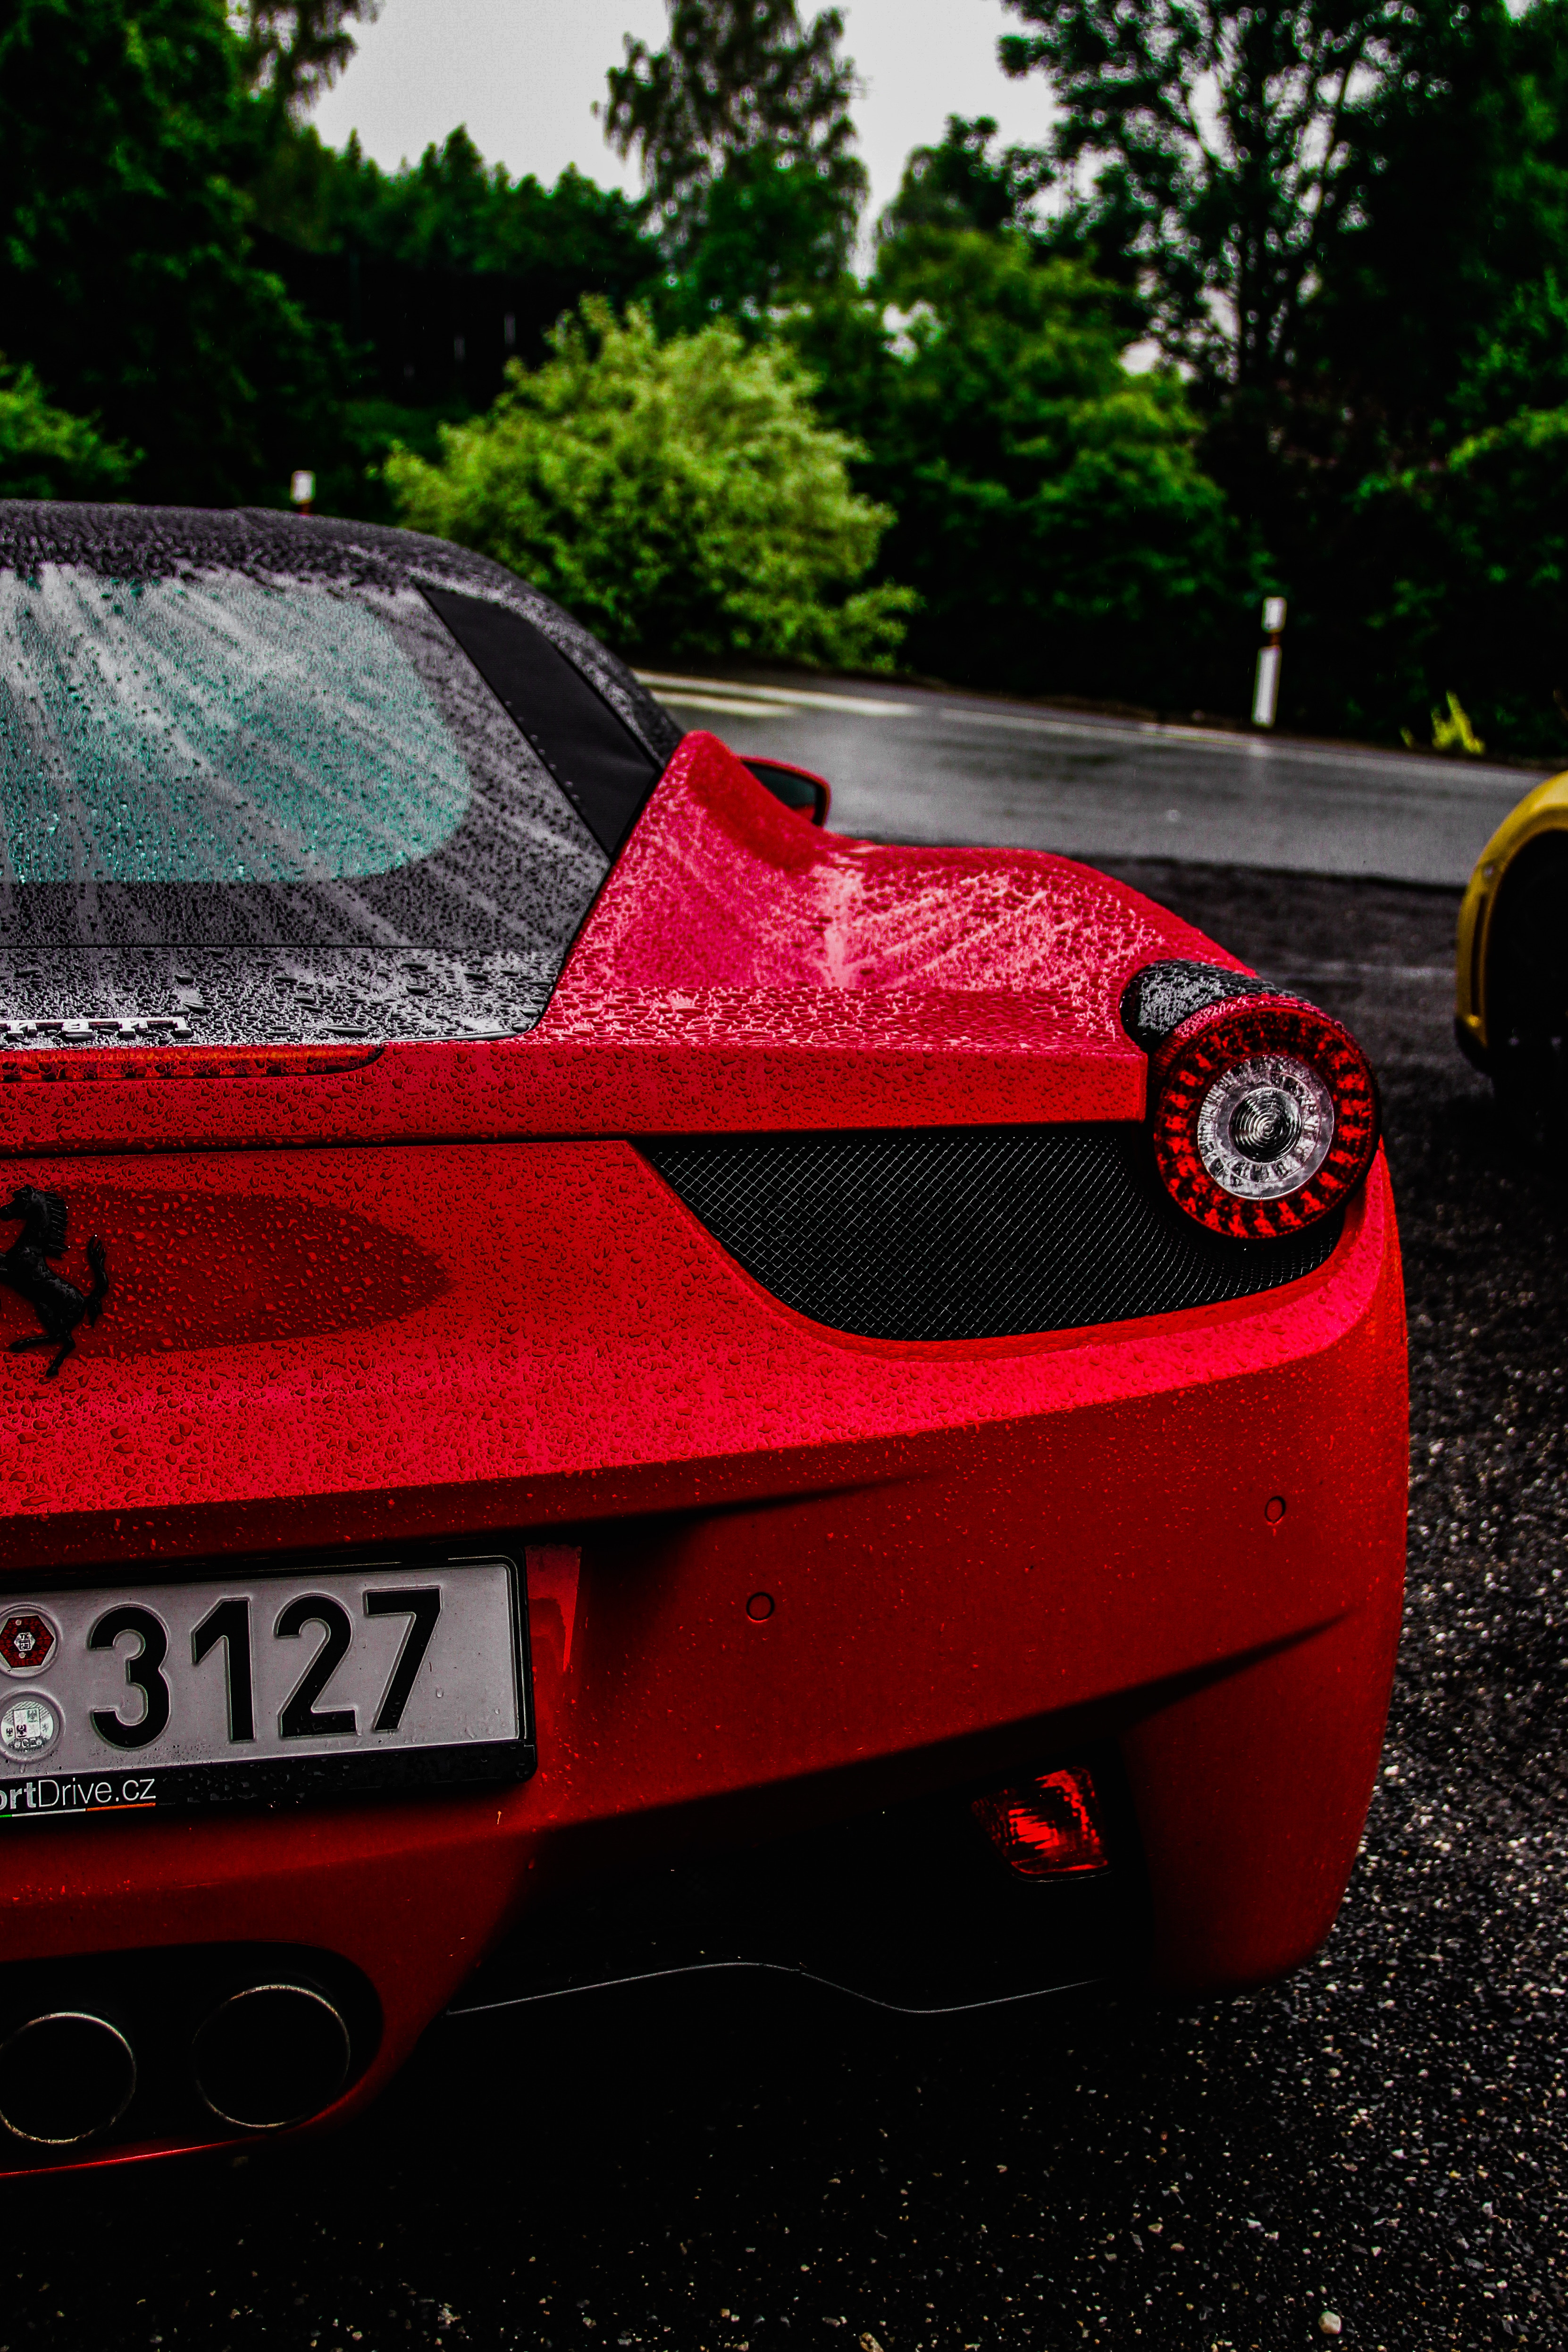 75400 download wallpaper Cars, Ferrari, Sports Car, Sports, Drops, Moisture screensavers and pictures for free